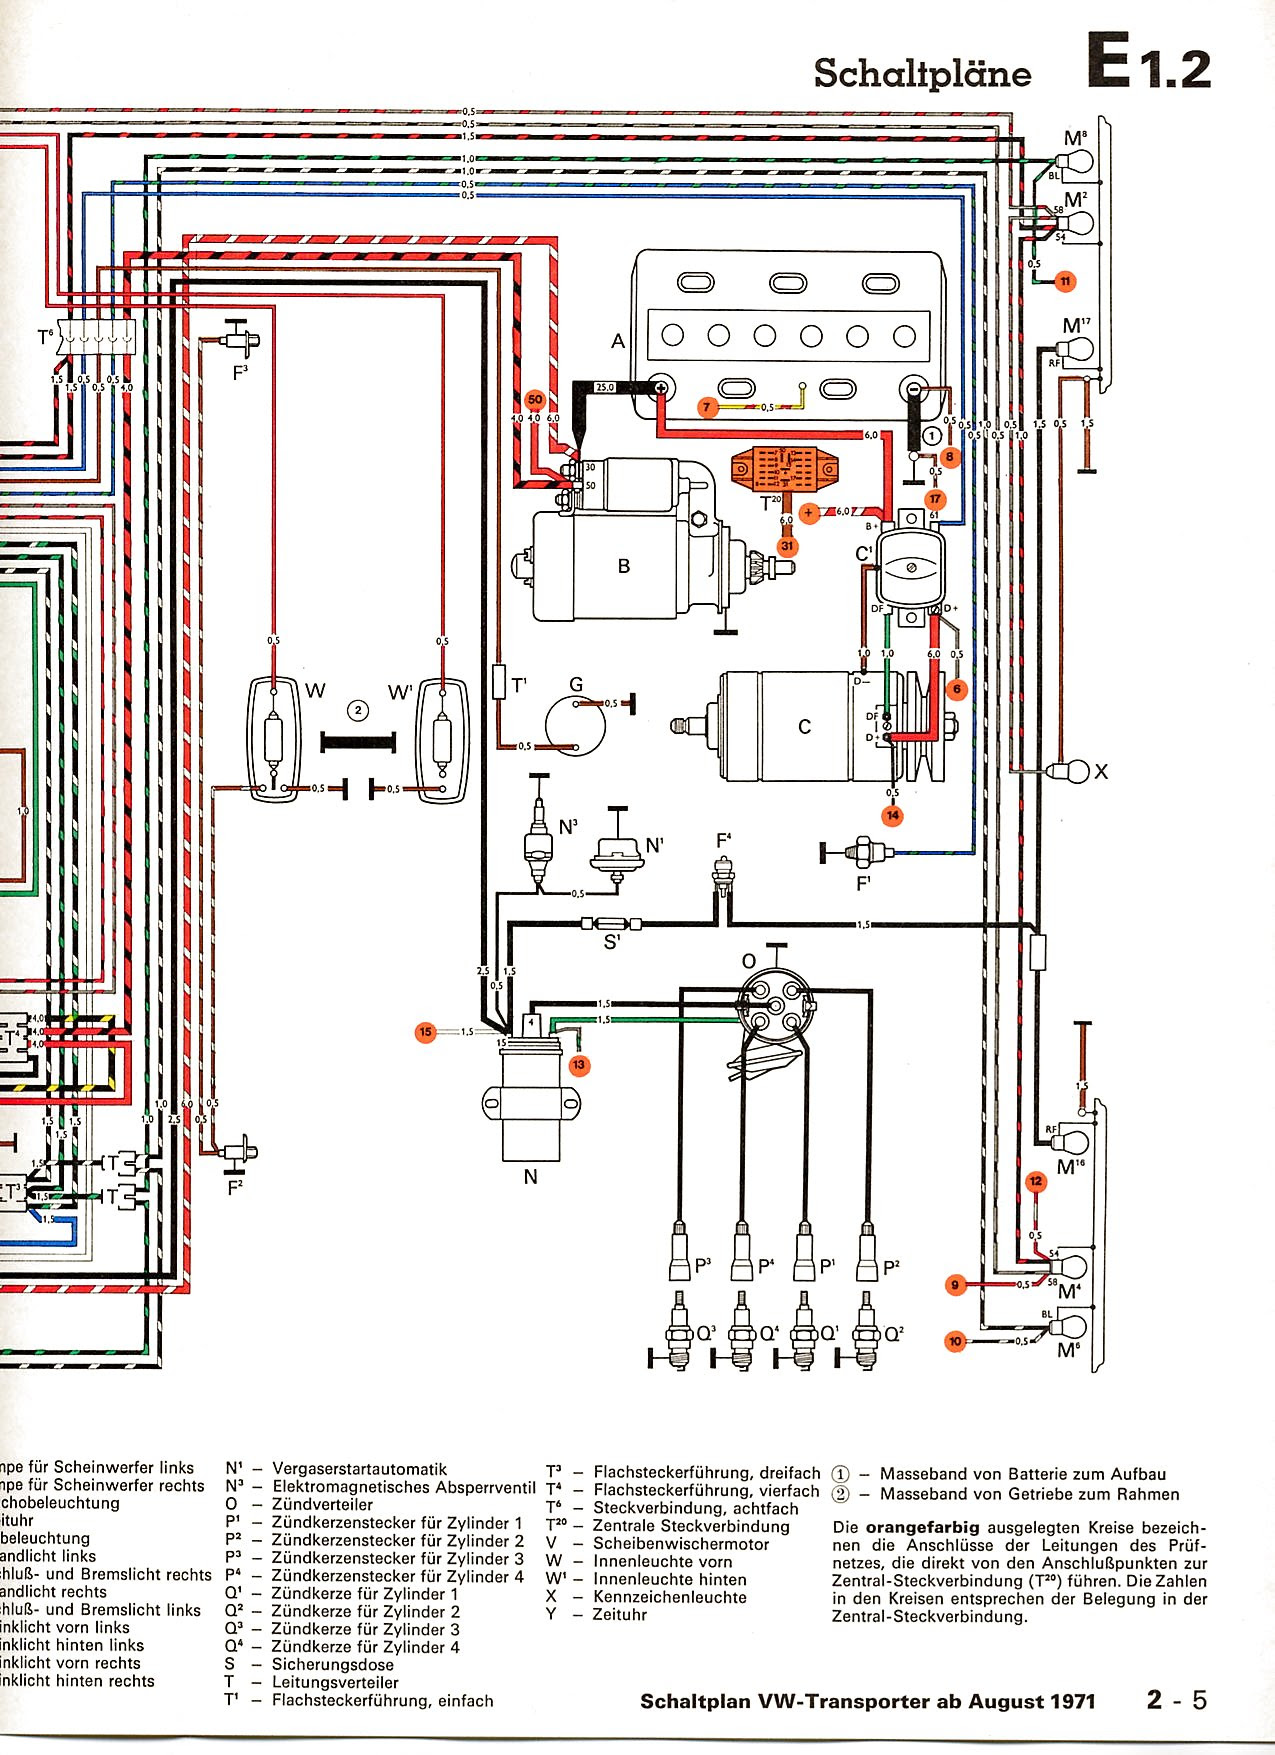 Diagram 1973 Vw Bus Wiring Diagram Full Version Hd Quality Wiring Diagram Diagramstana Dolcialchimie It